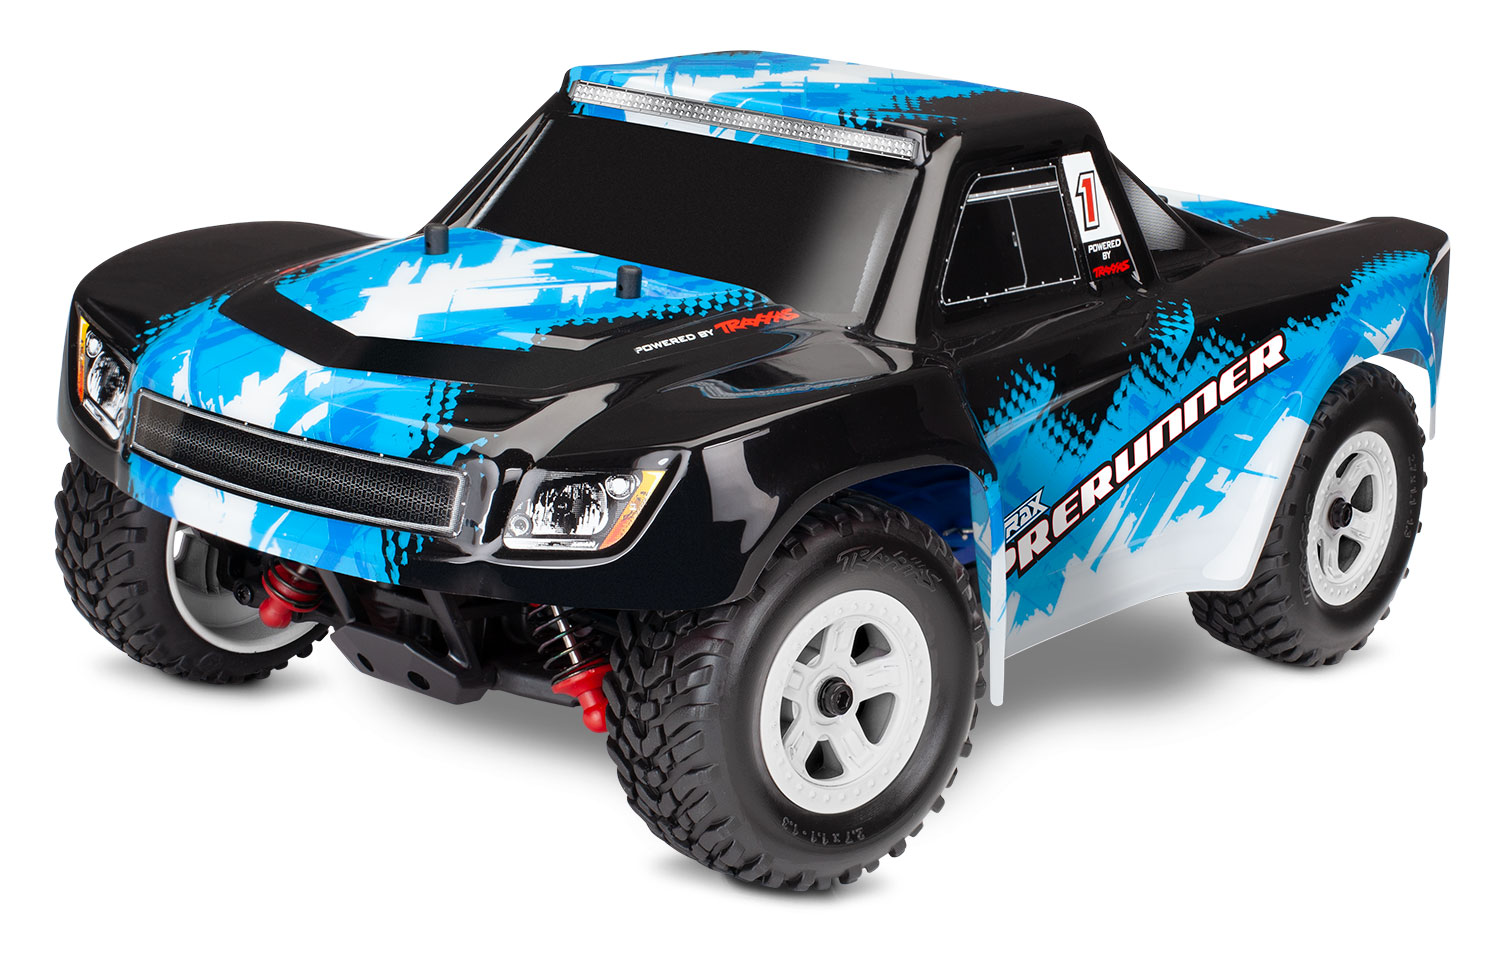 Two Fresh Color Schemes Now Available for the LaTrax Desert Prerunner